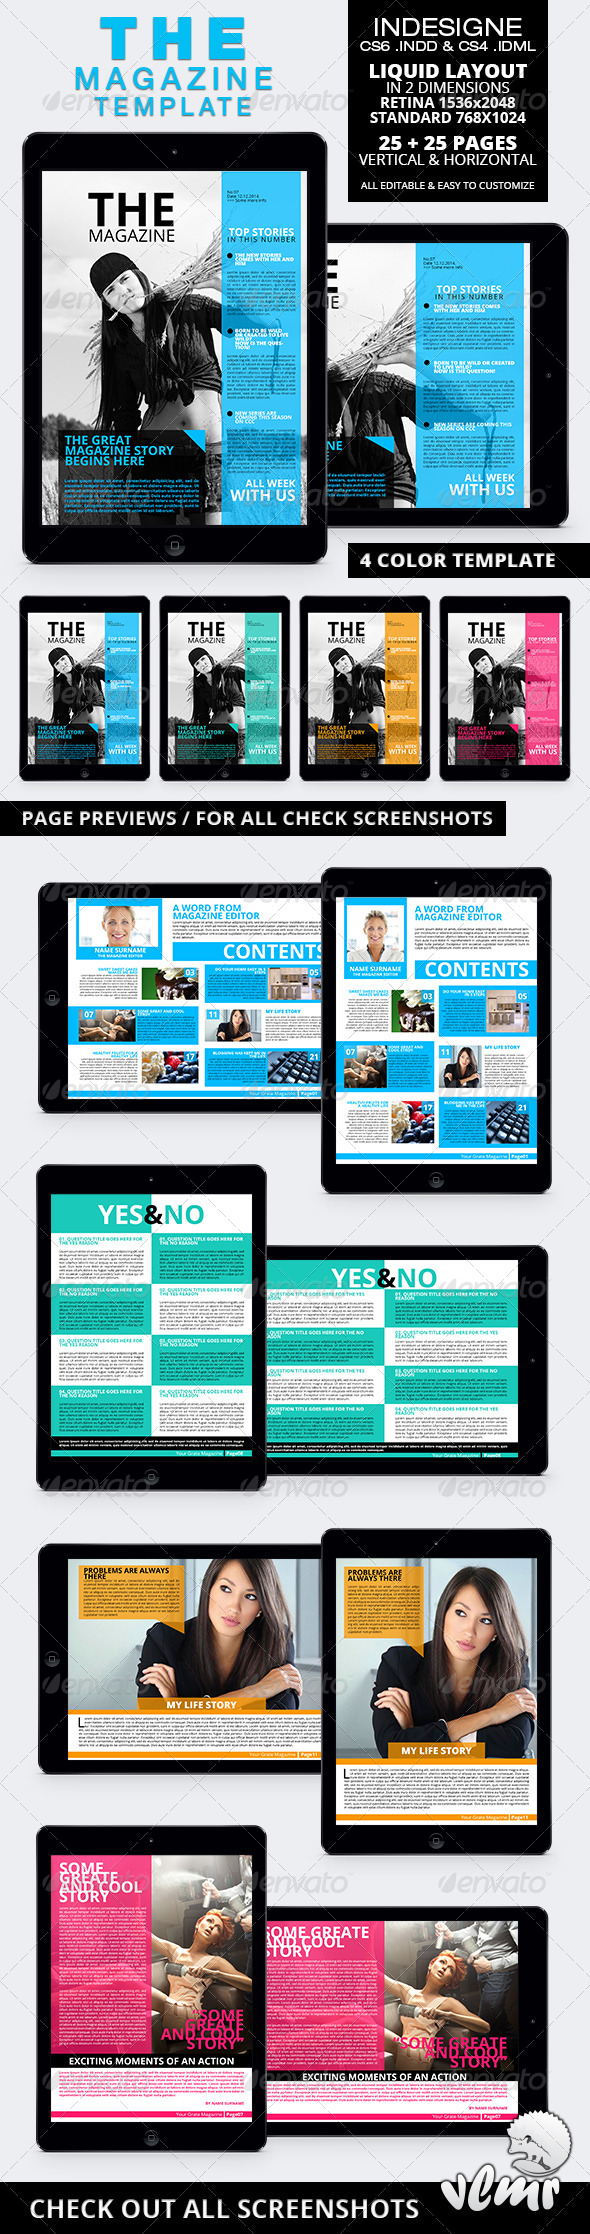 GraphicRiver The Magazine Tablet Template 6286533